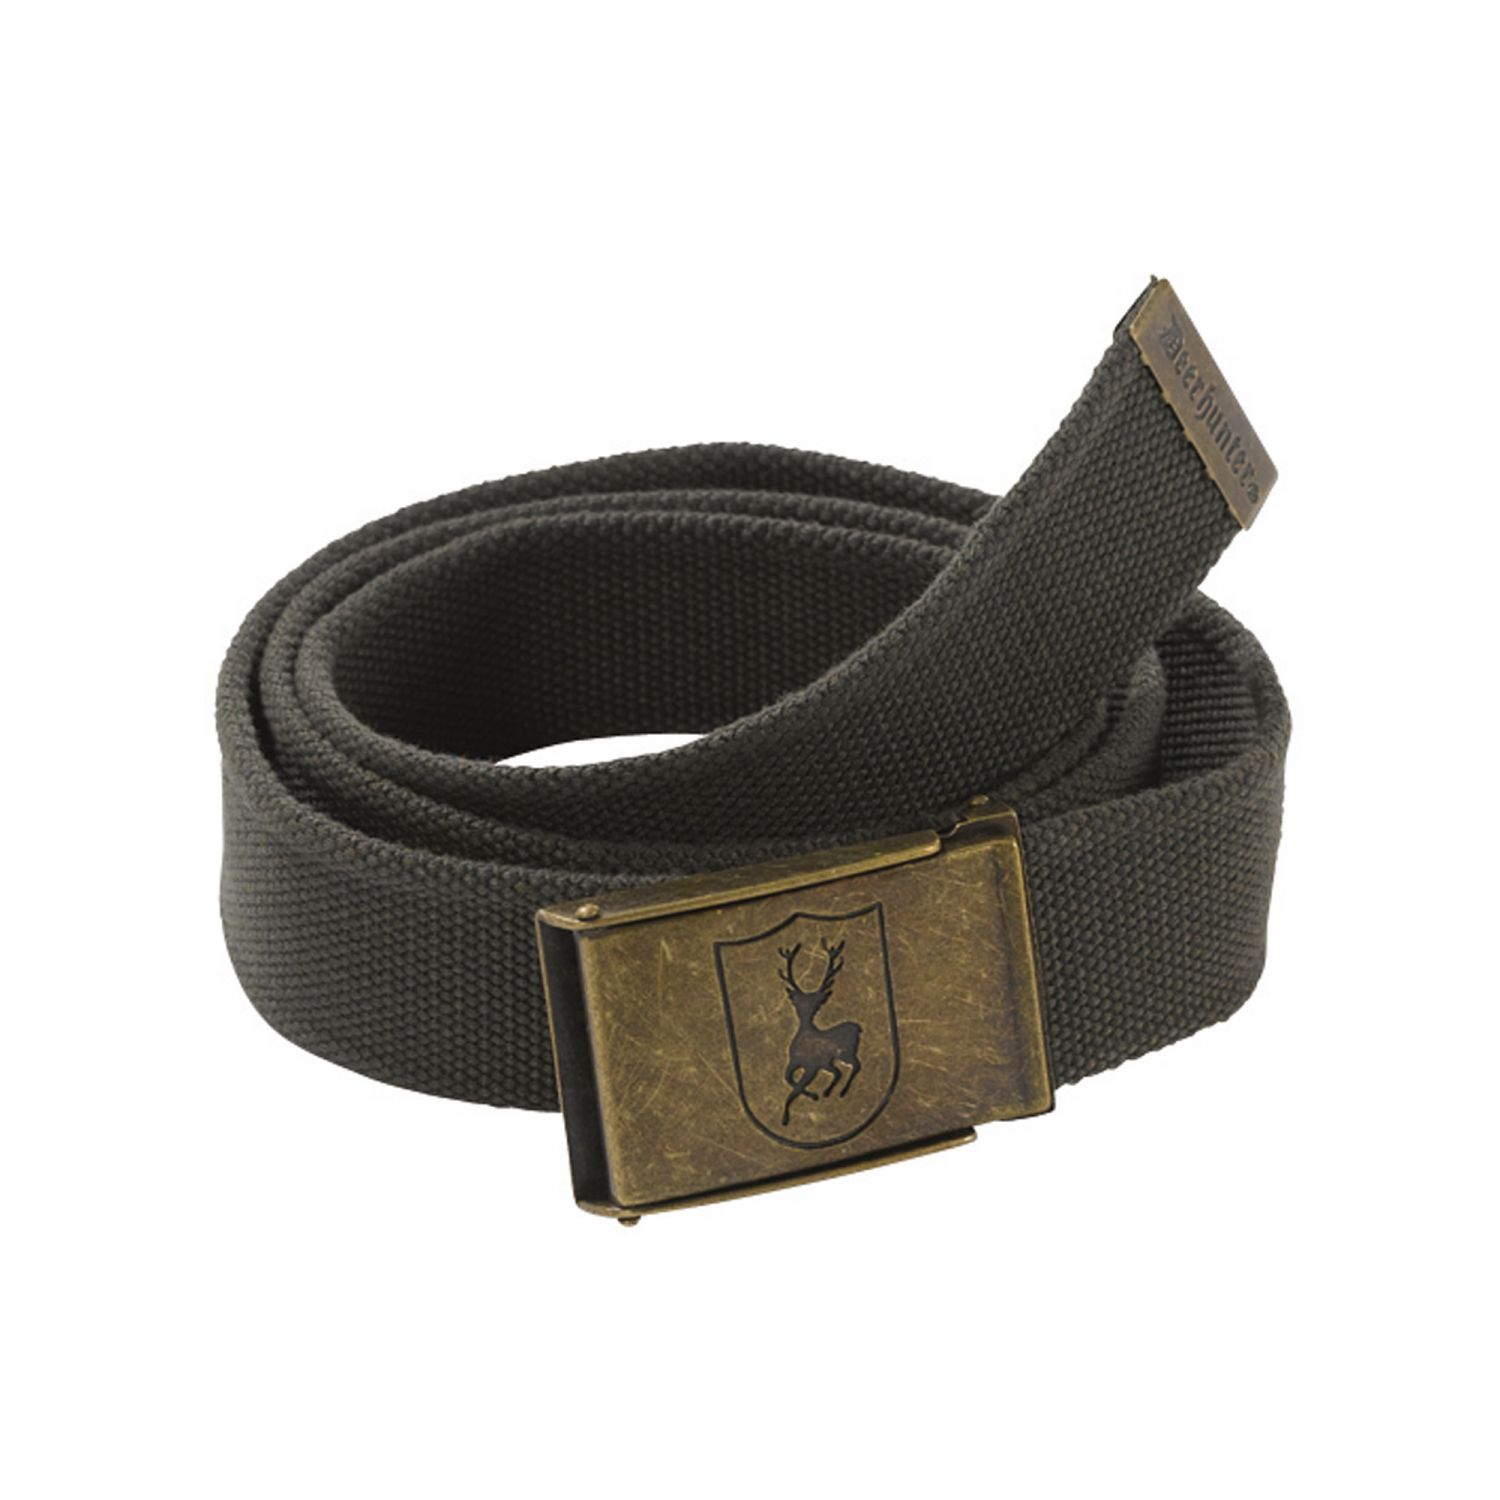 Ceinture Canvas Belt 8223